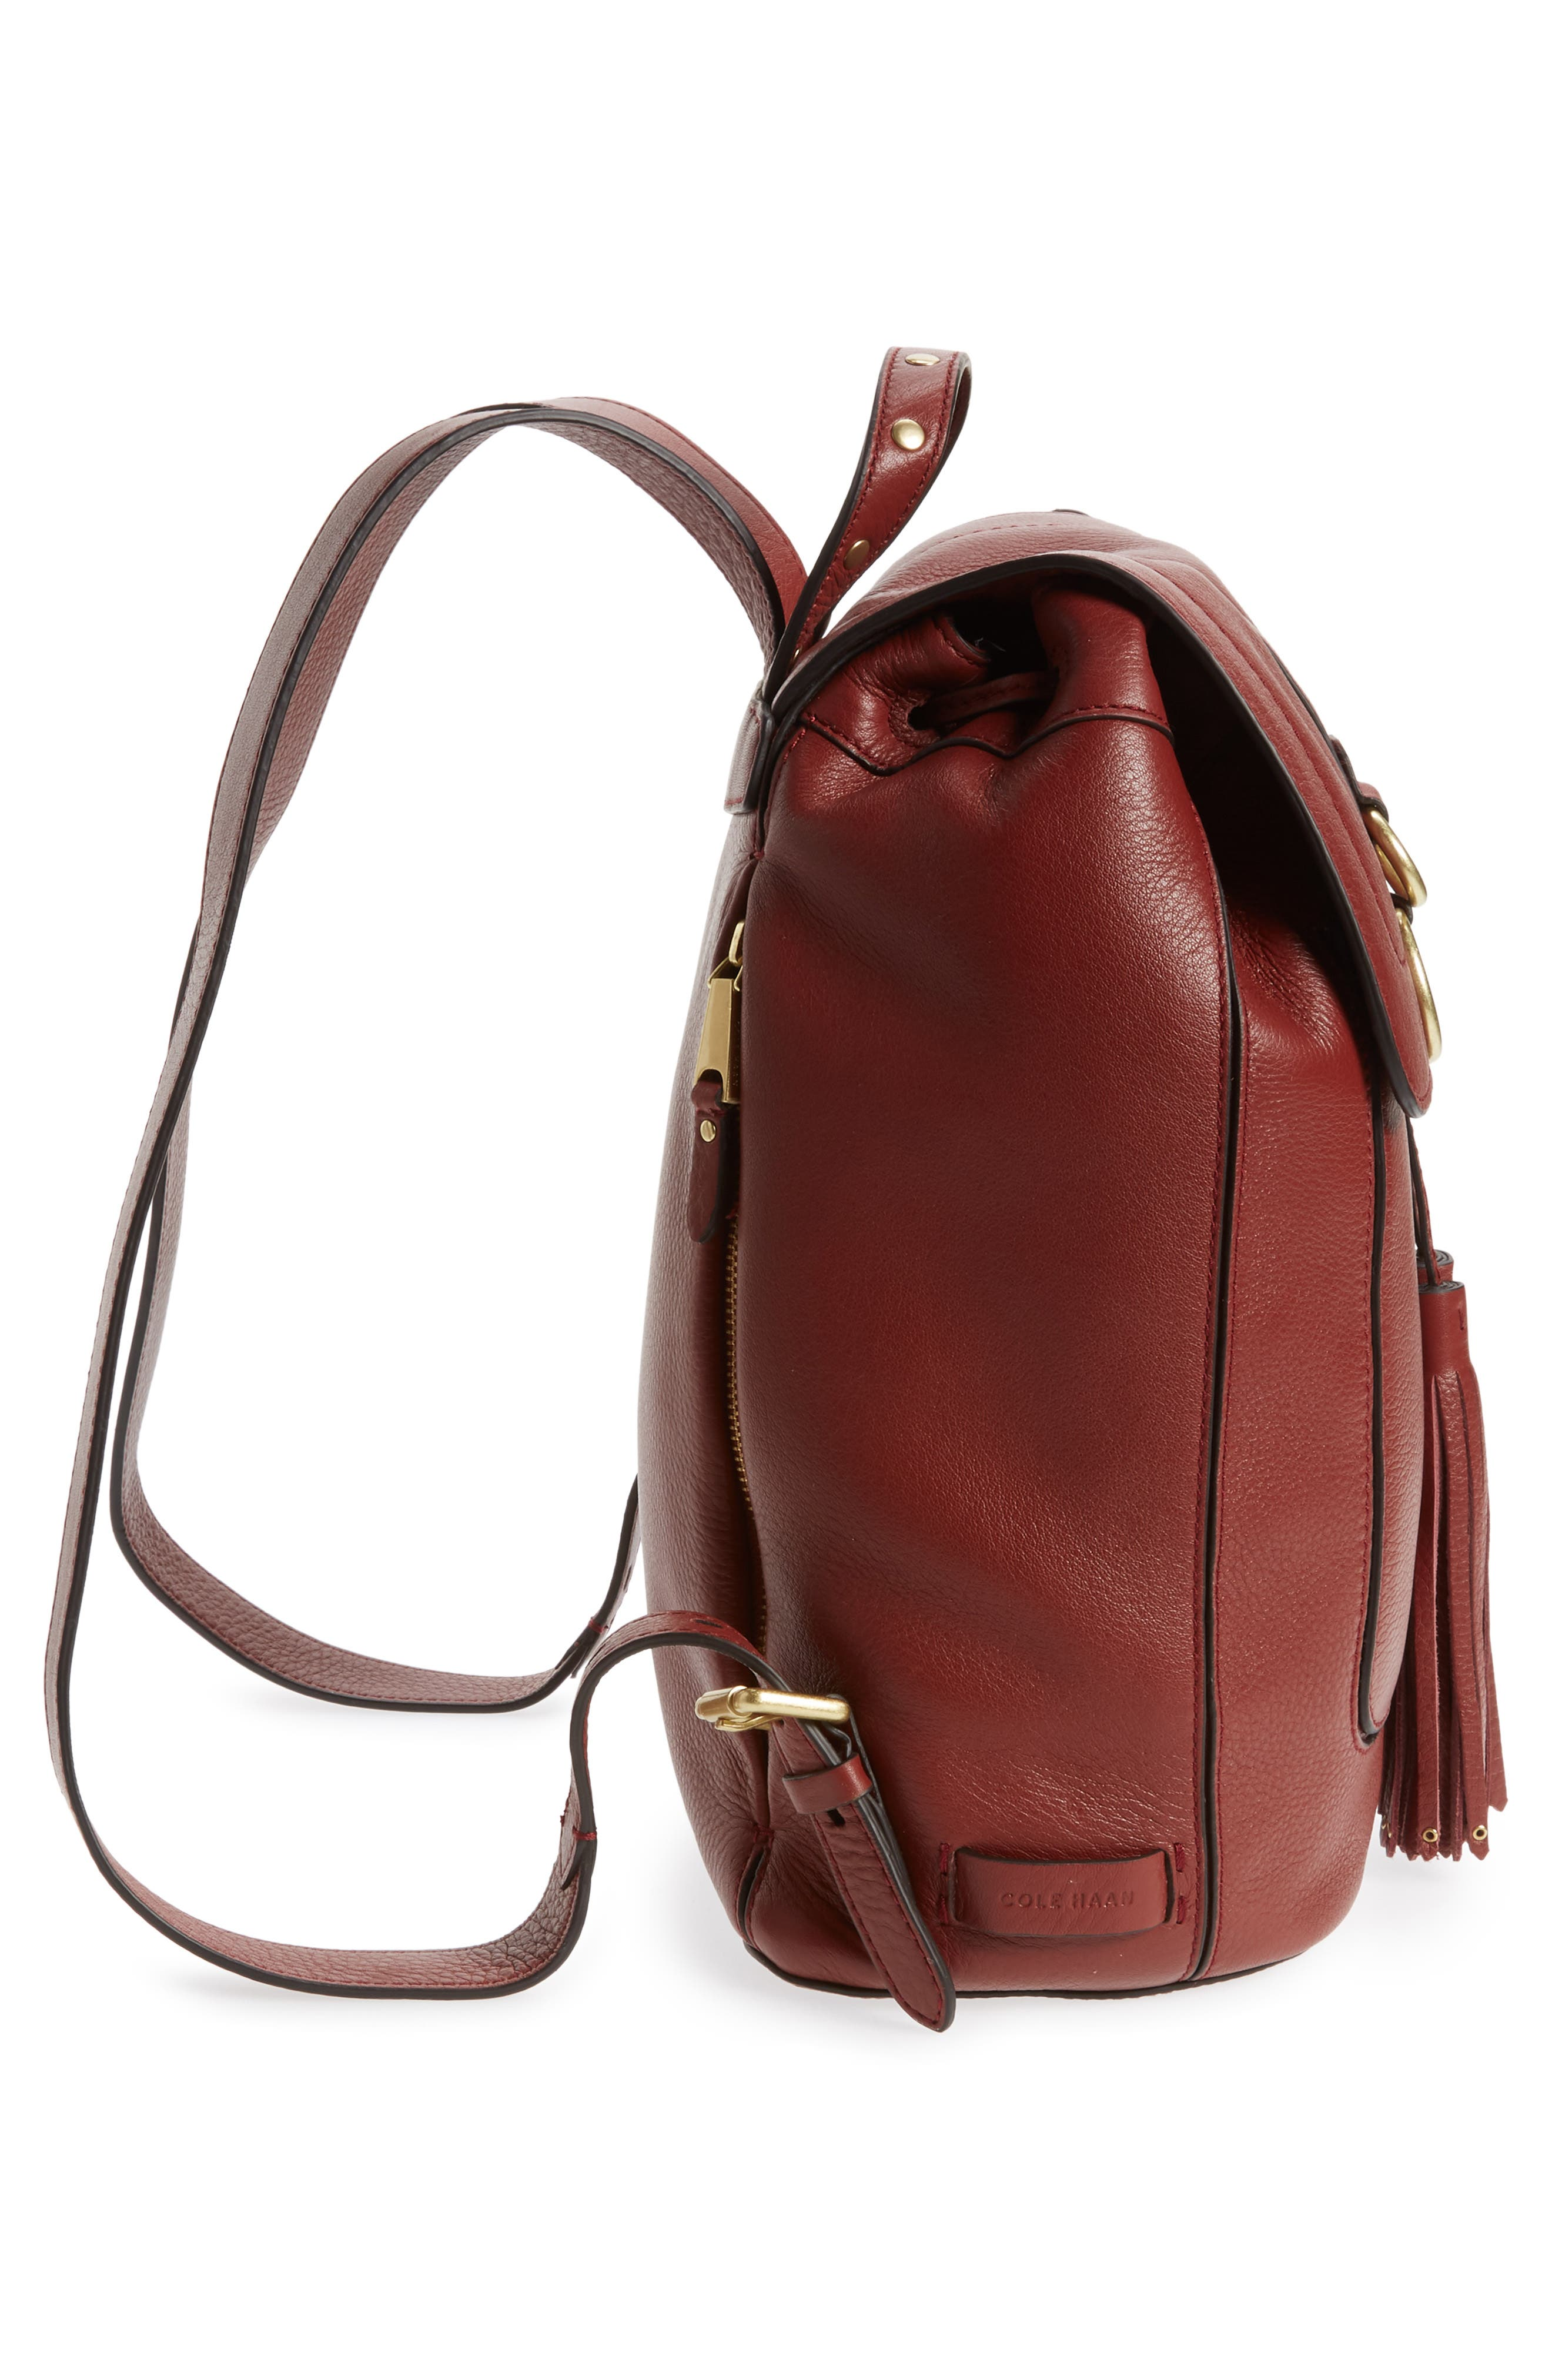 Cassidy RFID Pebbled Leather Backpack,                             Alternate thumbnail 18, color,